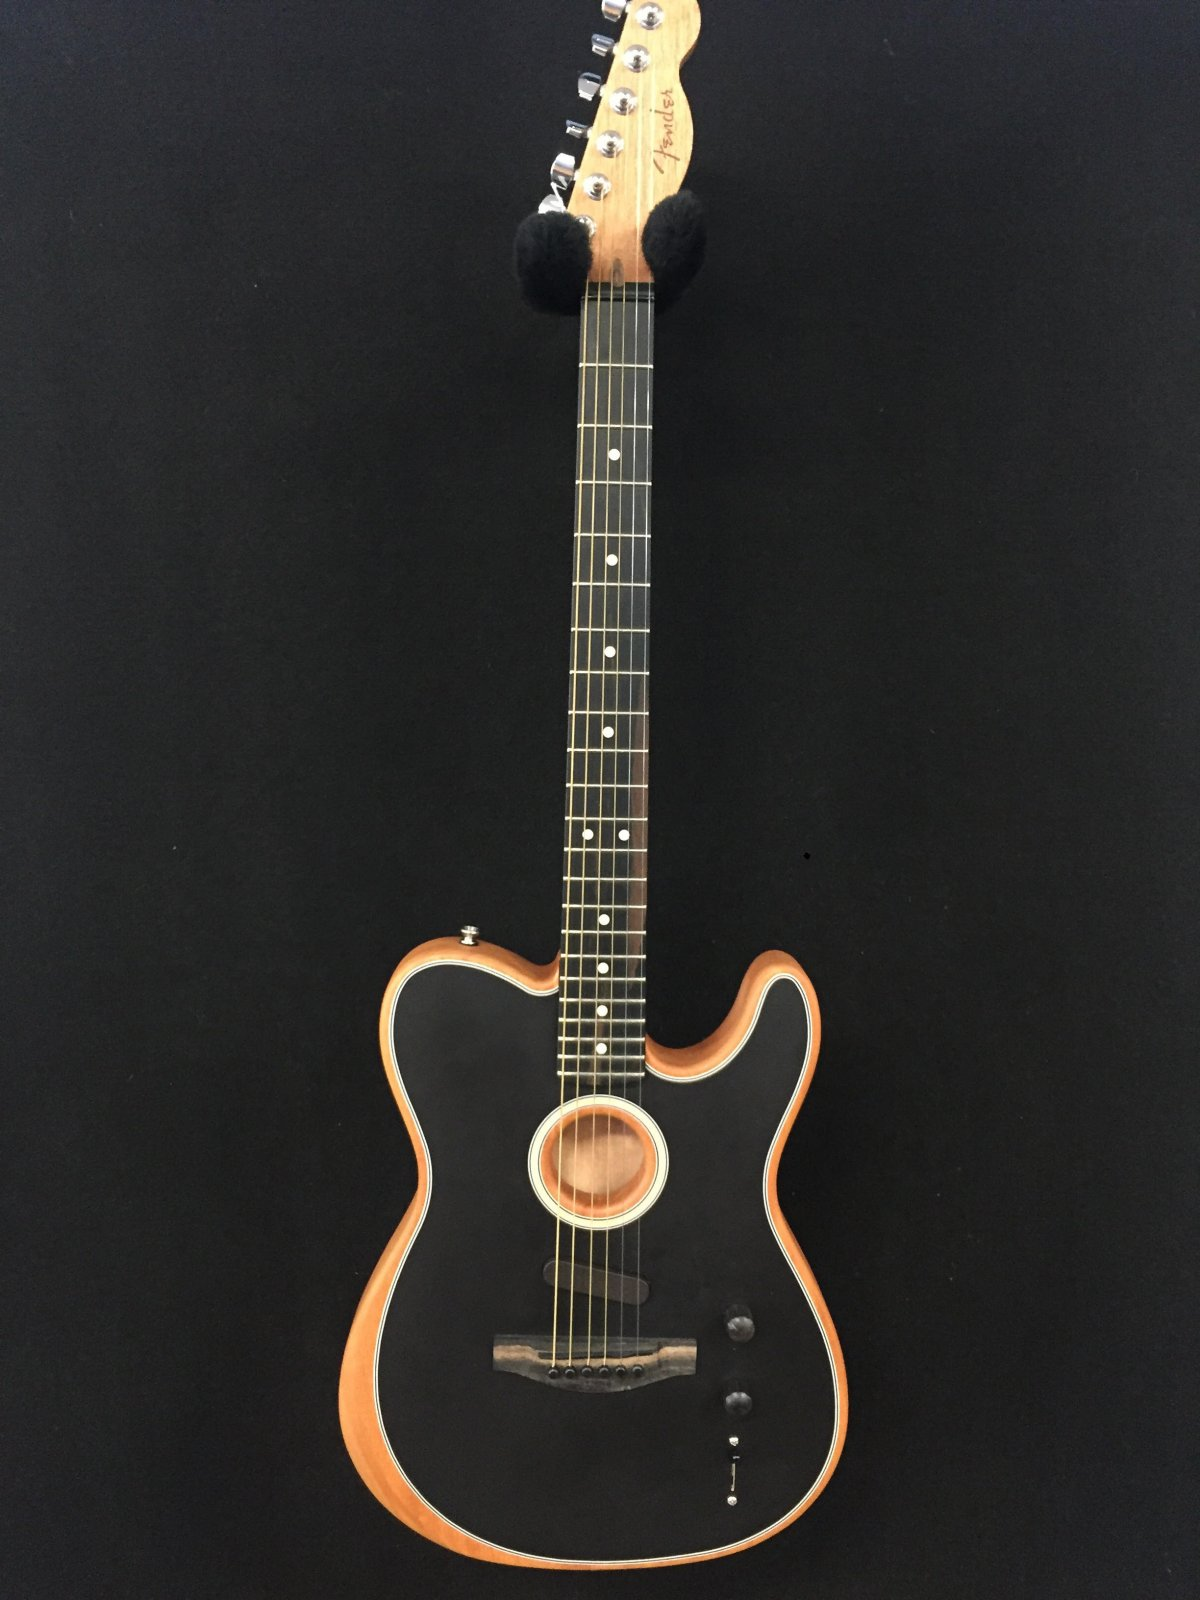 Consignment Keven Hill Fender Tele